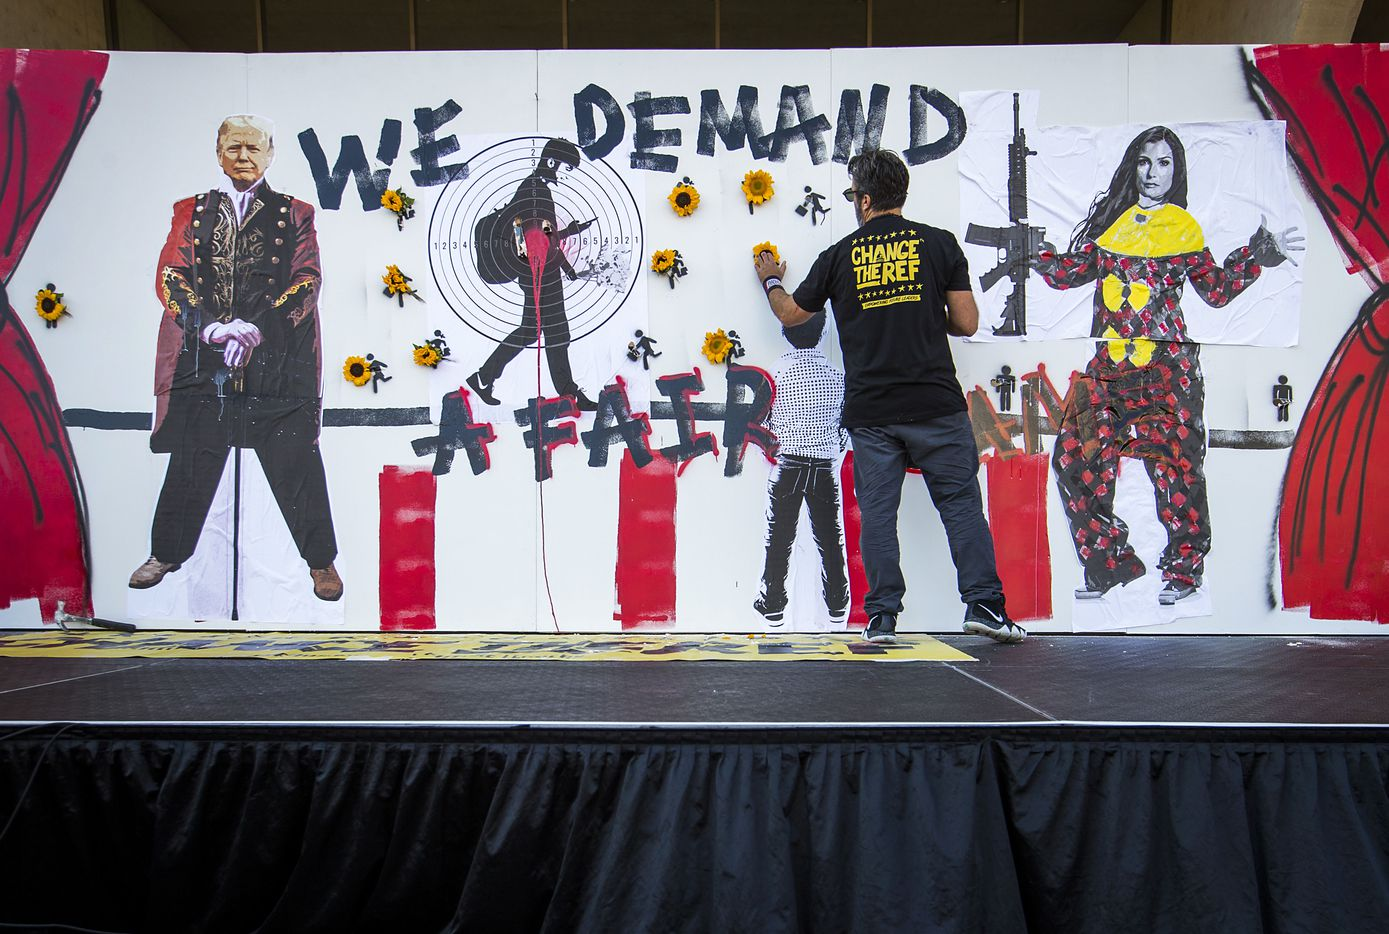 """Manuel Oliver places flowers in holes to symbolize the victims of a mass shooting at Marjory Stoneman Douglas High School in Parkland, Florida, as he creates a """"Wall of Demand"""" during a gun control demonstration outside Dallas City Hall organized by StudentsMarch.org during the NRA Annual Meeting & Exhibits at the Kay Bailey Hutchison Convention Center on Saturday, May 5, 2018, in Dallas. Oliver's son Joaquin was one of the 17 victims of the shooting."""